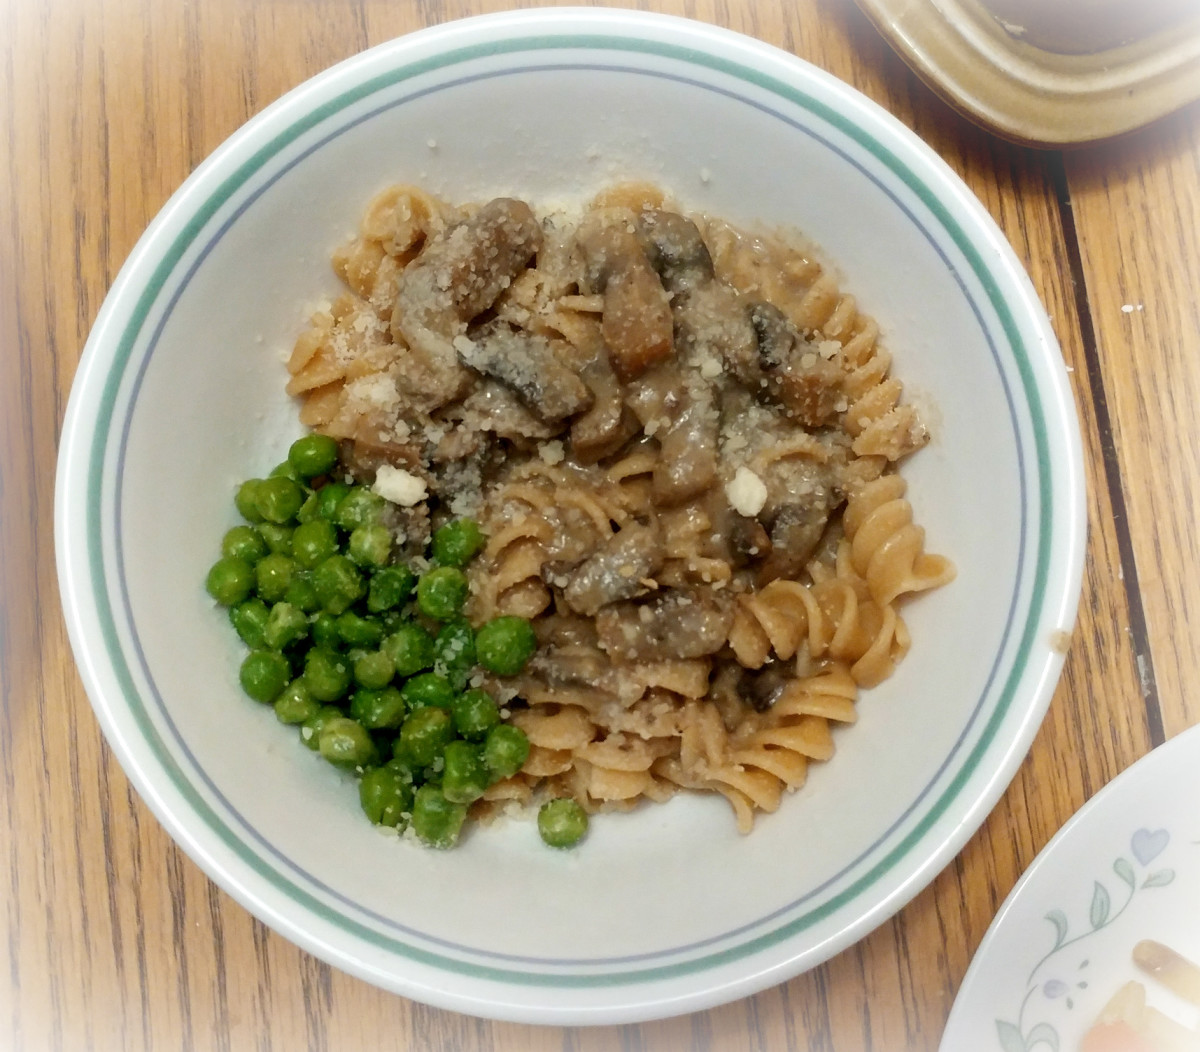 Served over whole wheat noodles with a side of peas!